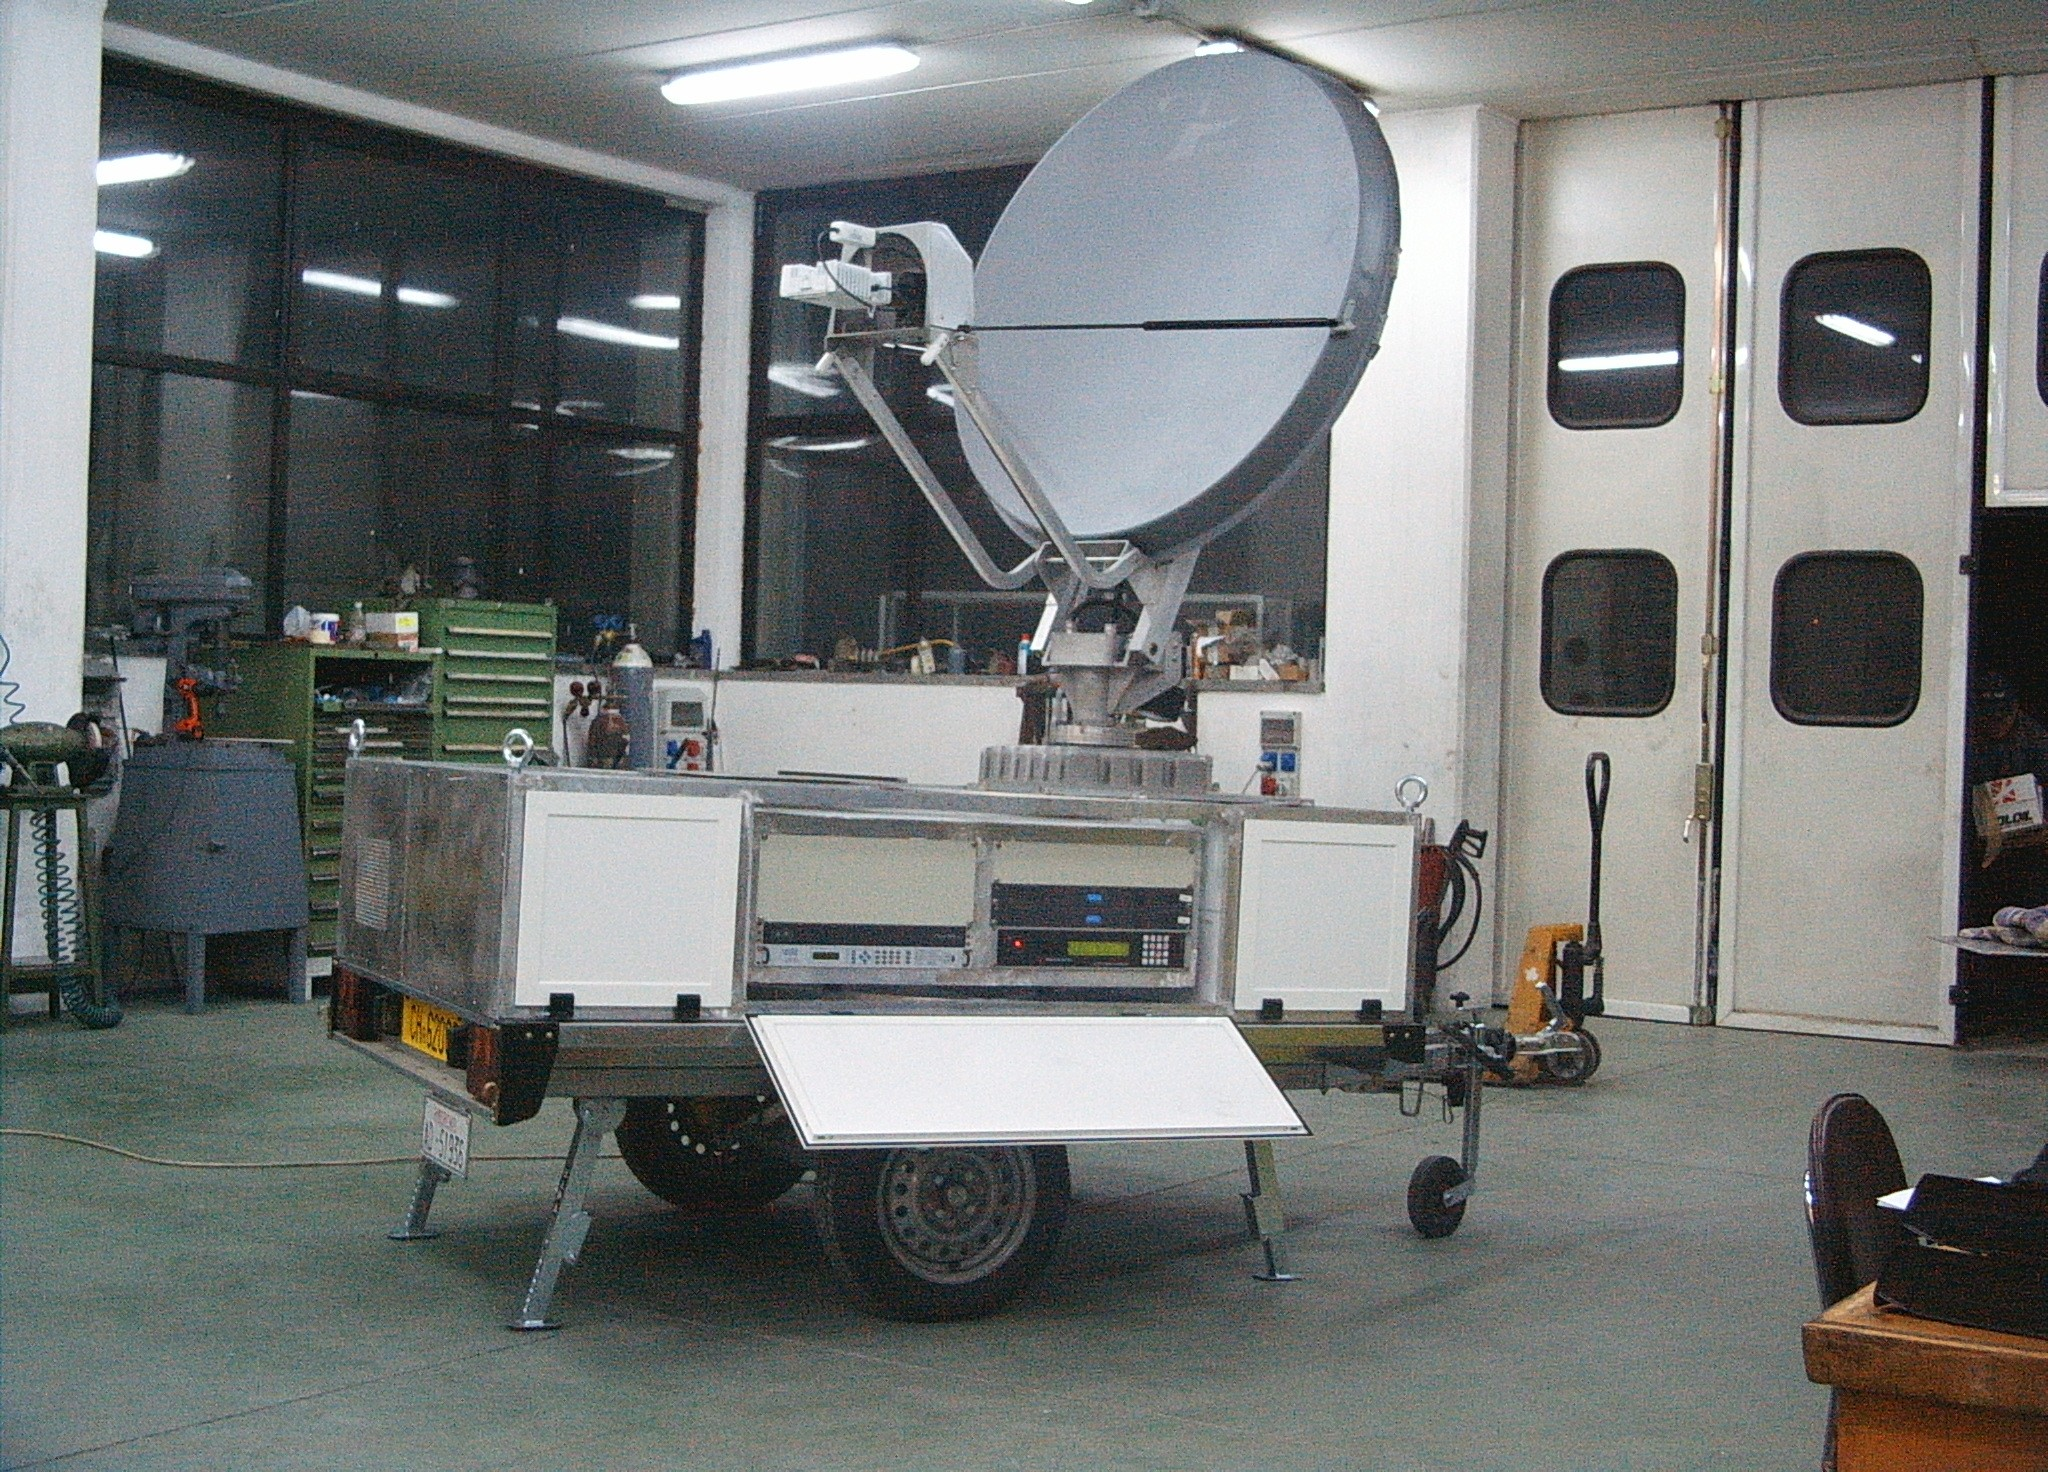 Carrello satellitare MOBSAT